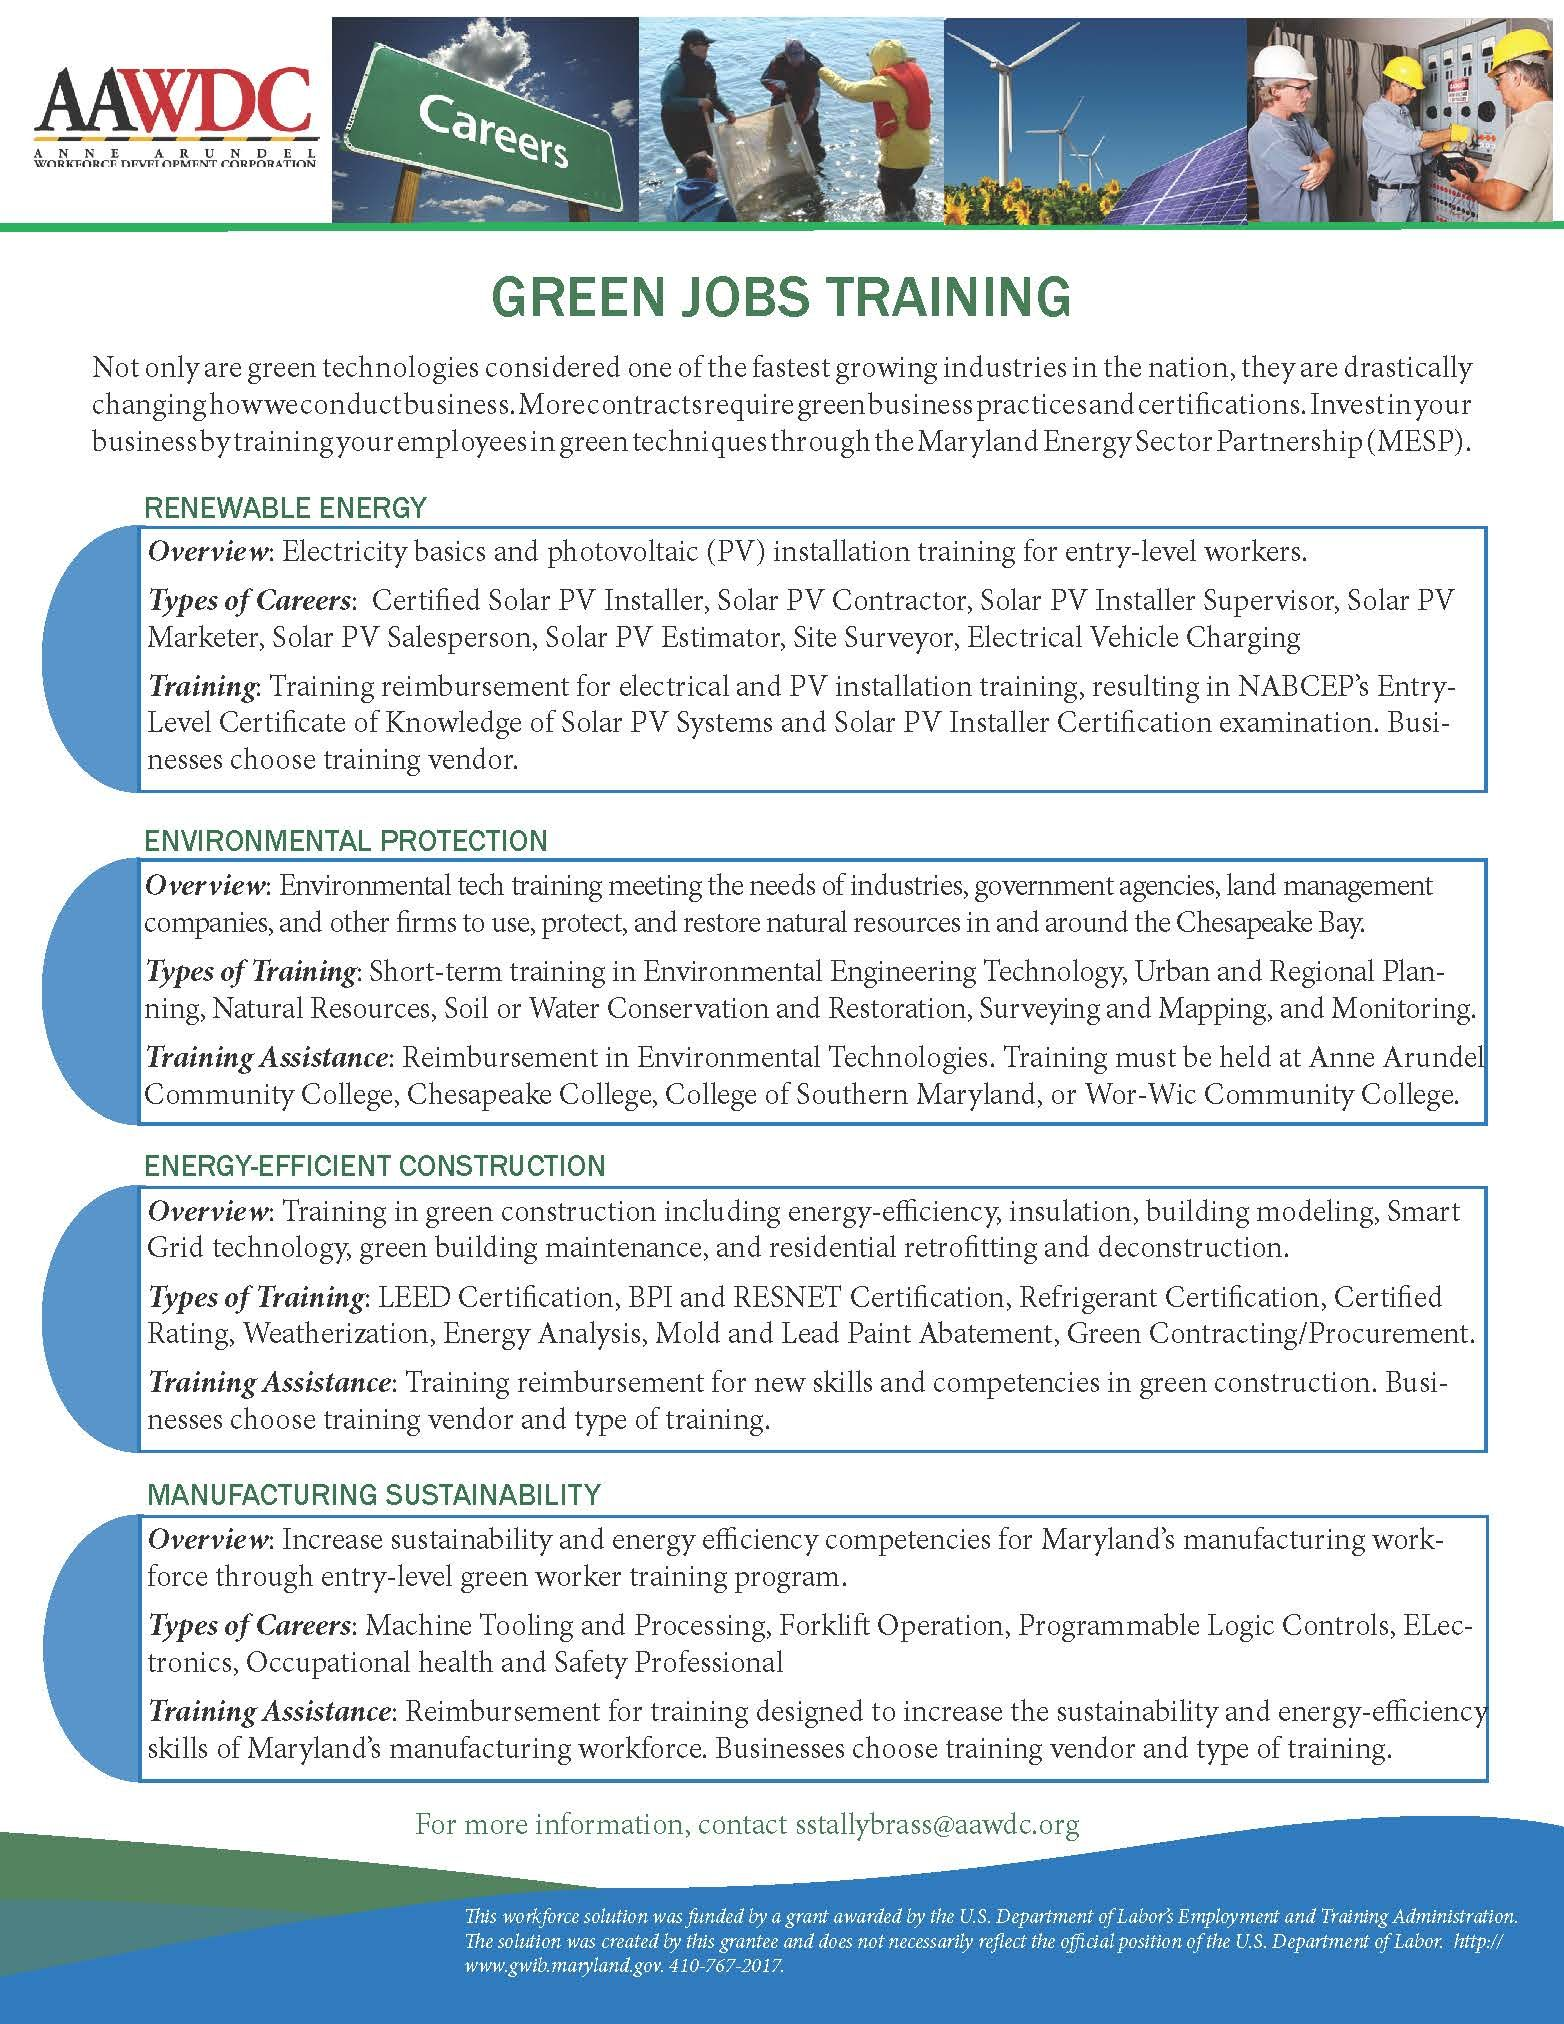 A Flyer I Designed To Promote Green Jobs Training To Businesses